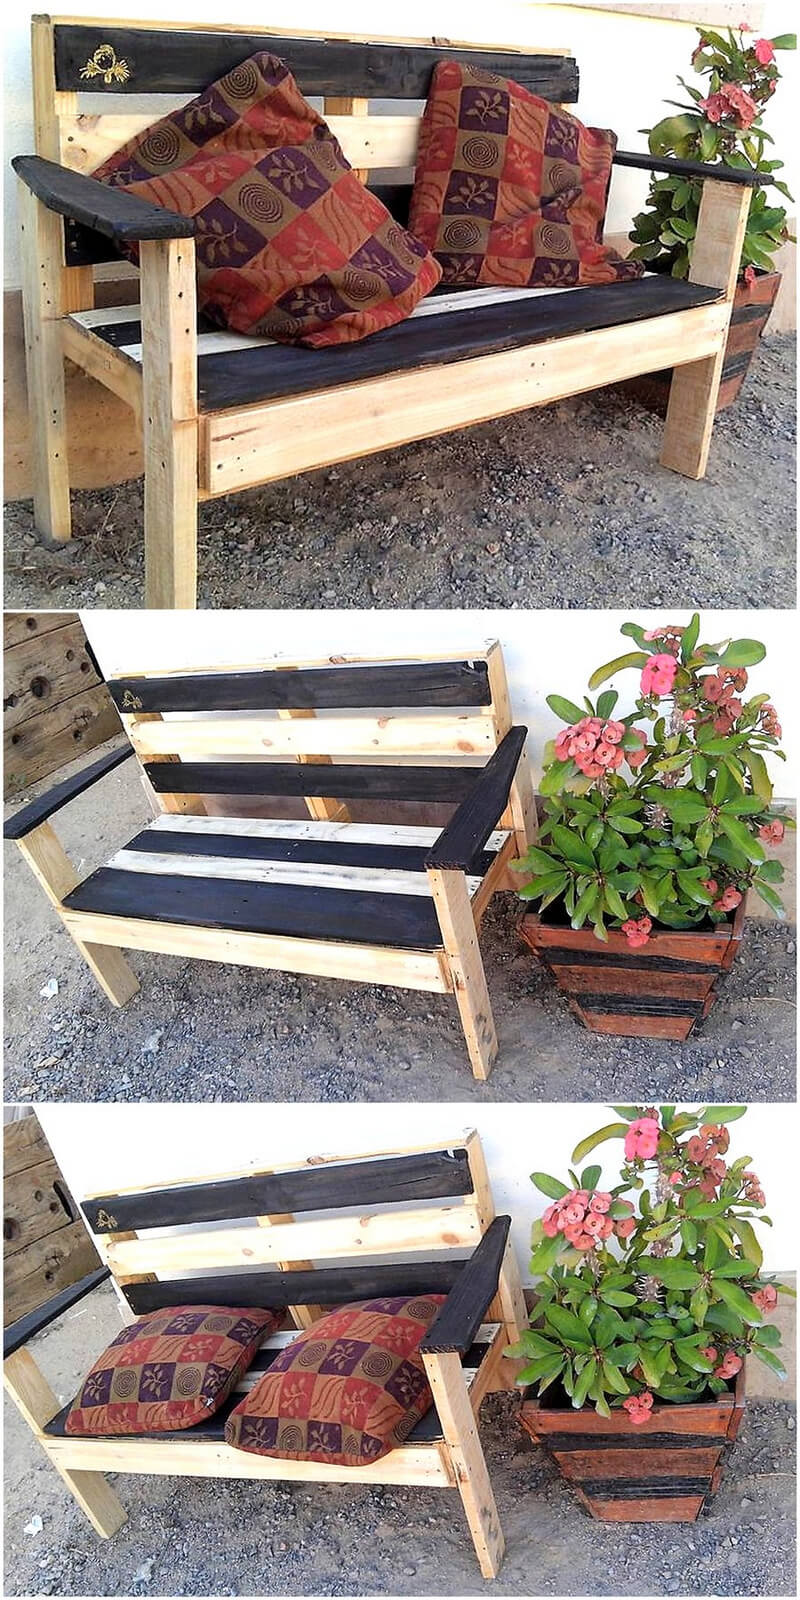 Repurposing Plans for Shipping Wood Pallets   Wood Pallet ...